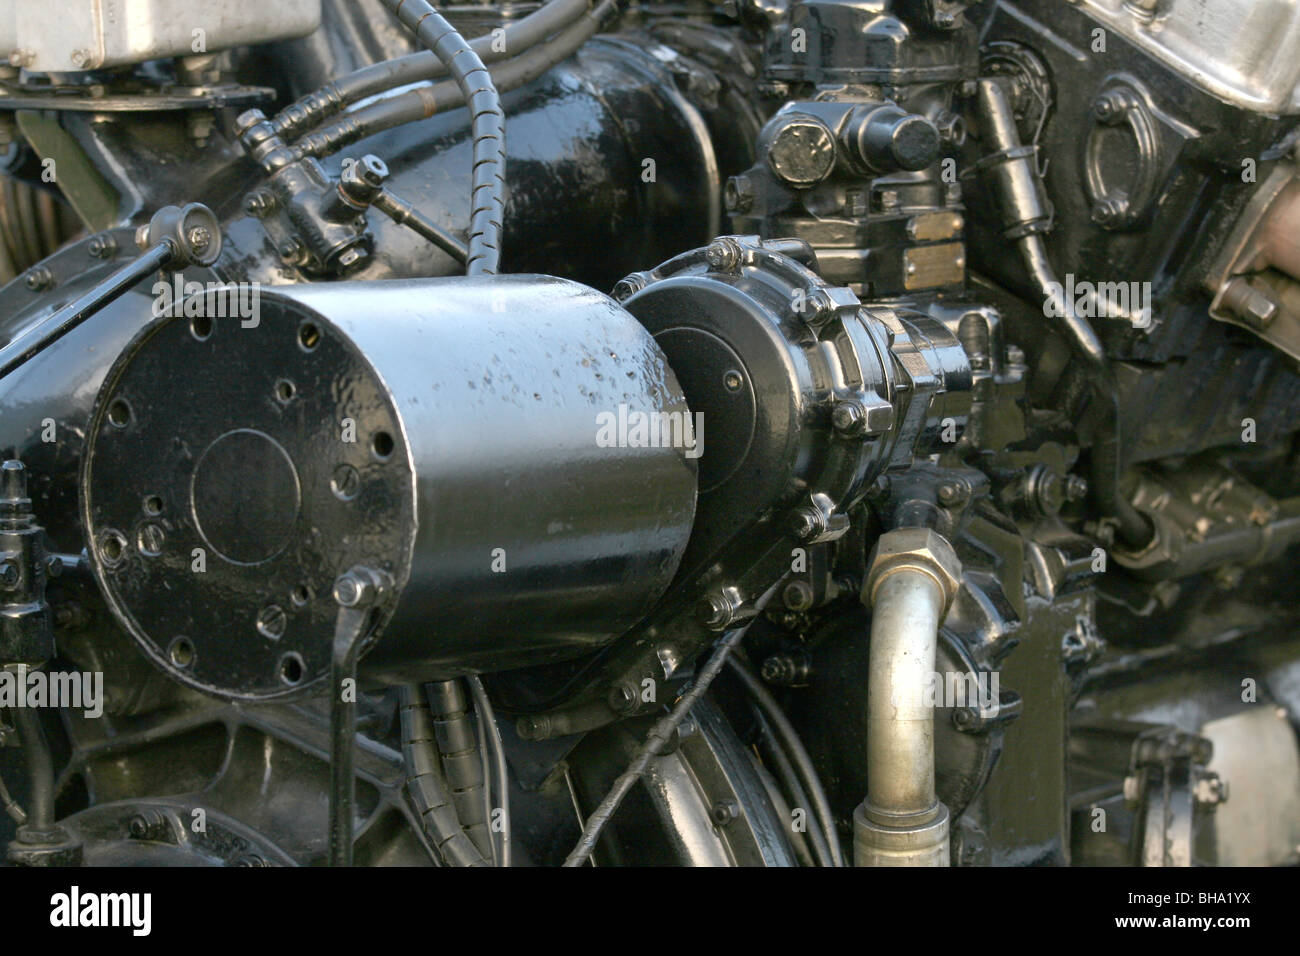 Detail of the Rolls-Royce Merlin Engine used in the ...